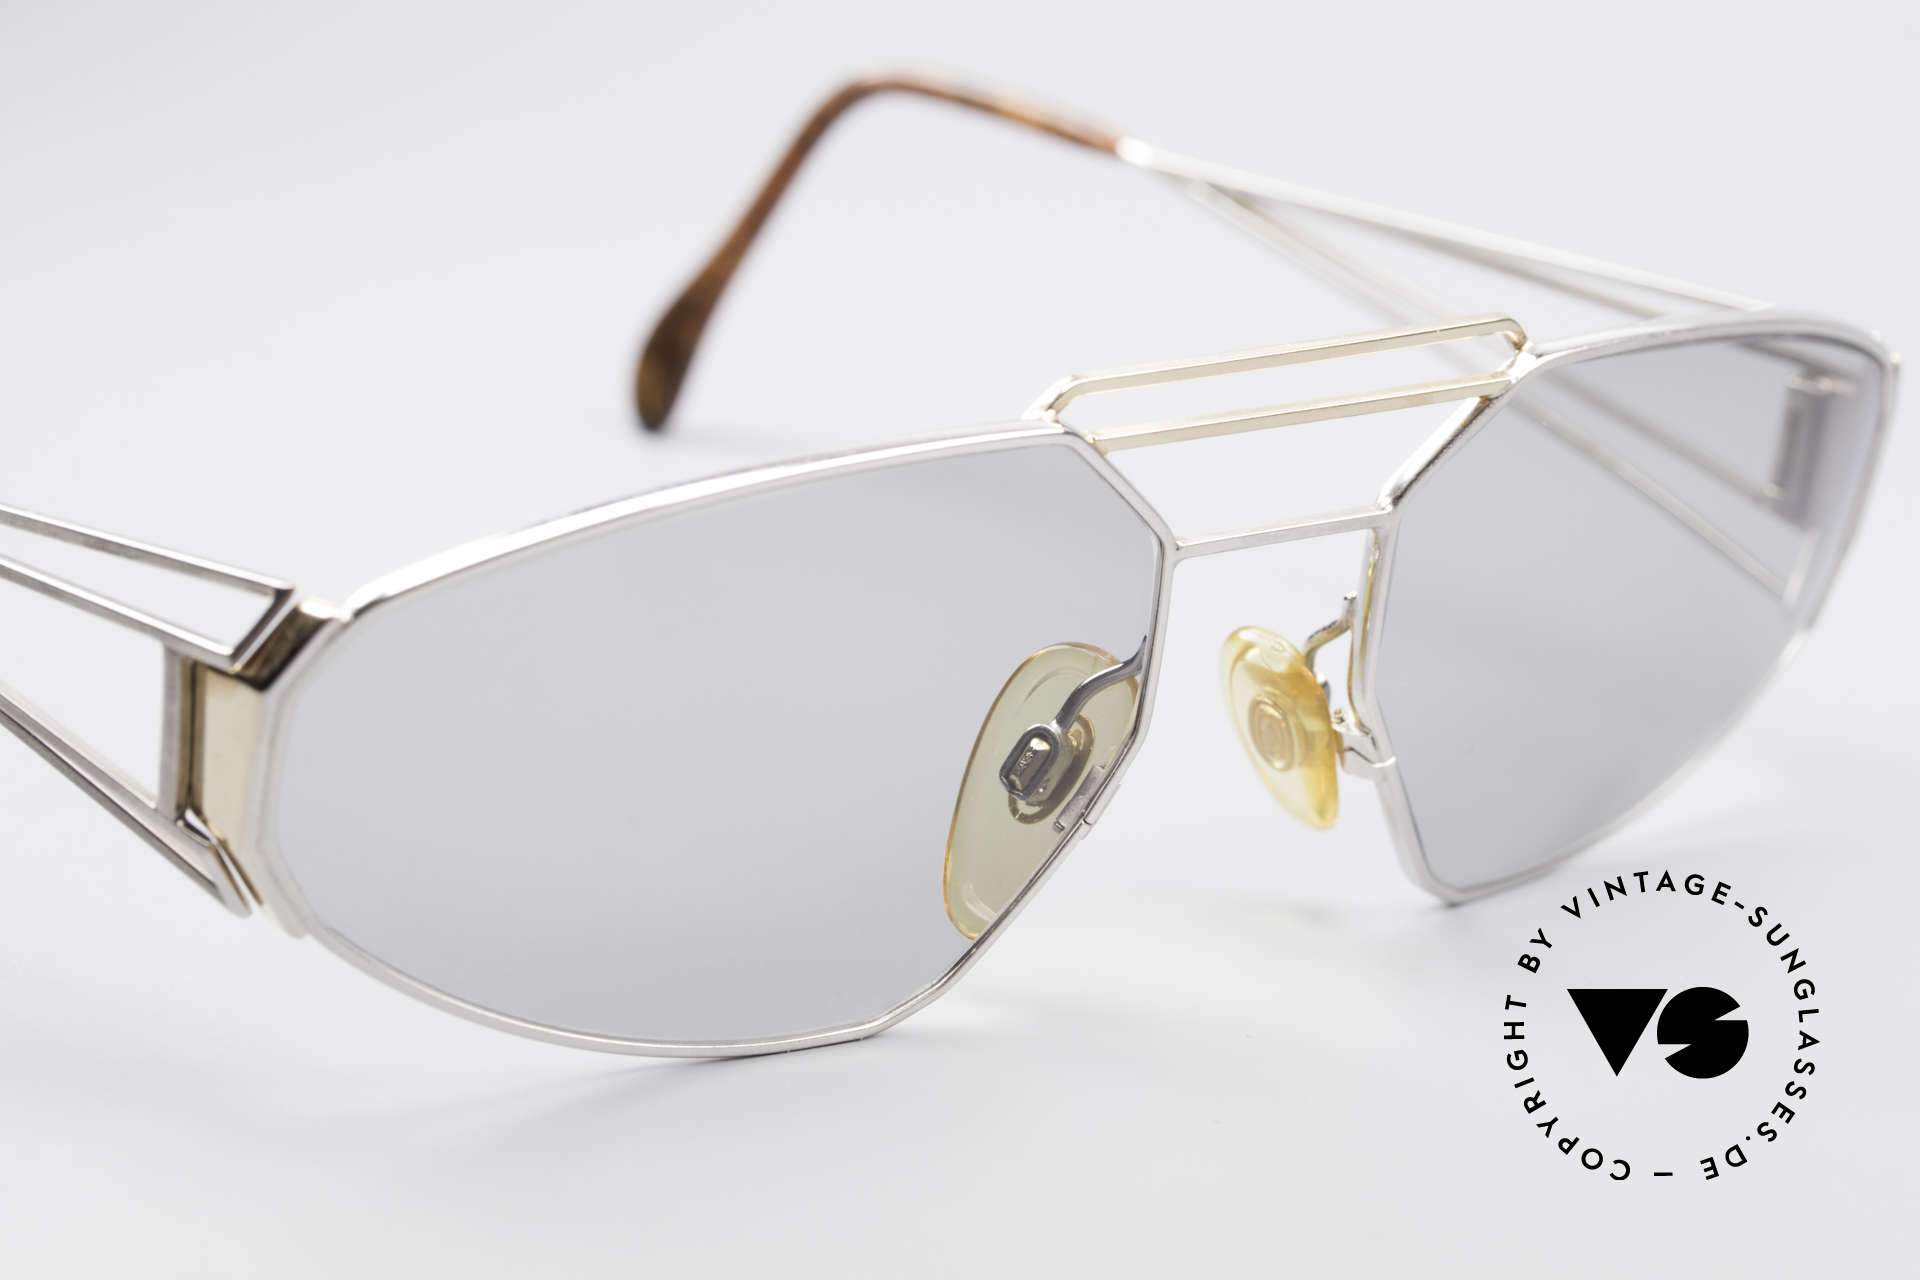 Zollitsch Trapez Geometrical Designer Frame, NO retro fashion; an authentic 25 years old original, Made for Men